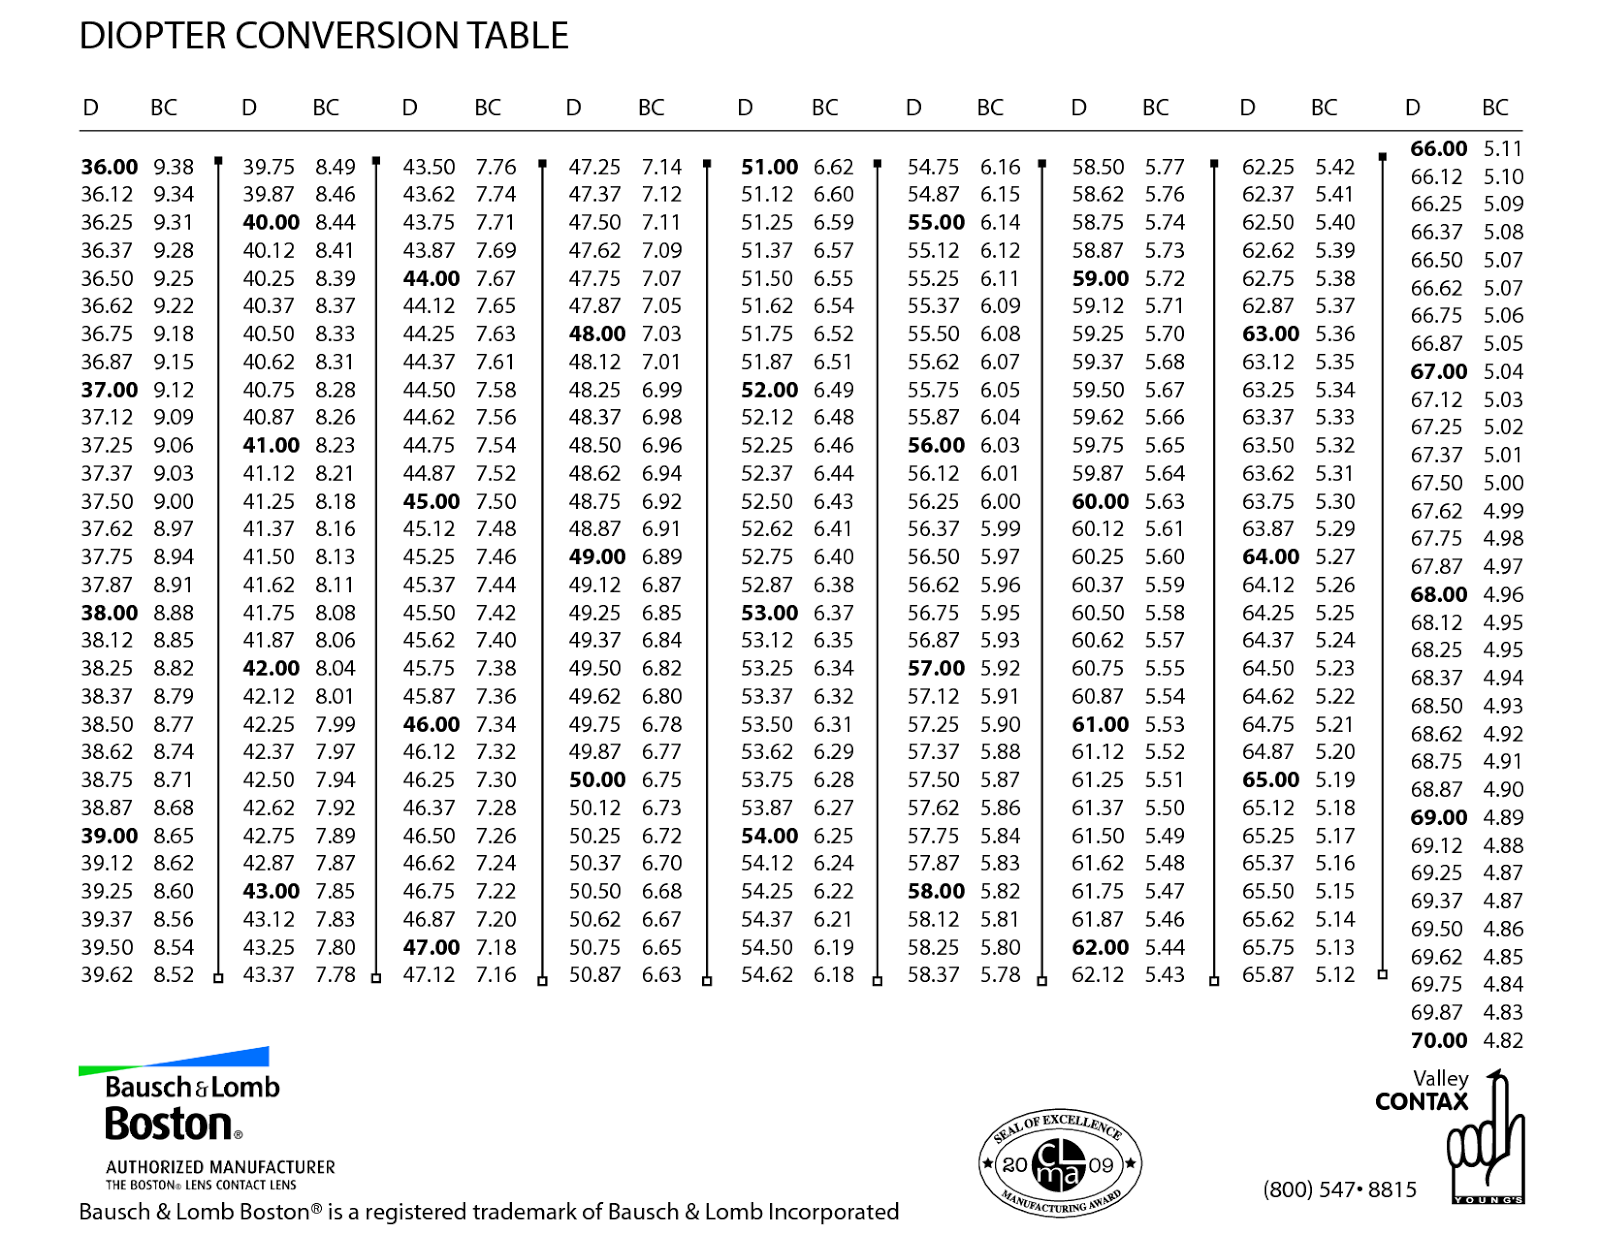 Keratometry reading conversion chart 2 jpg ratelco keratometry reading conversion chart ar guided reading level nvjuhfo Gallery